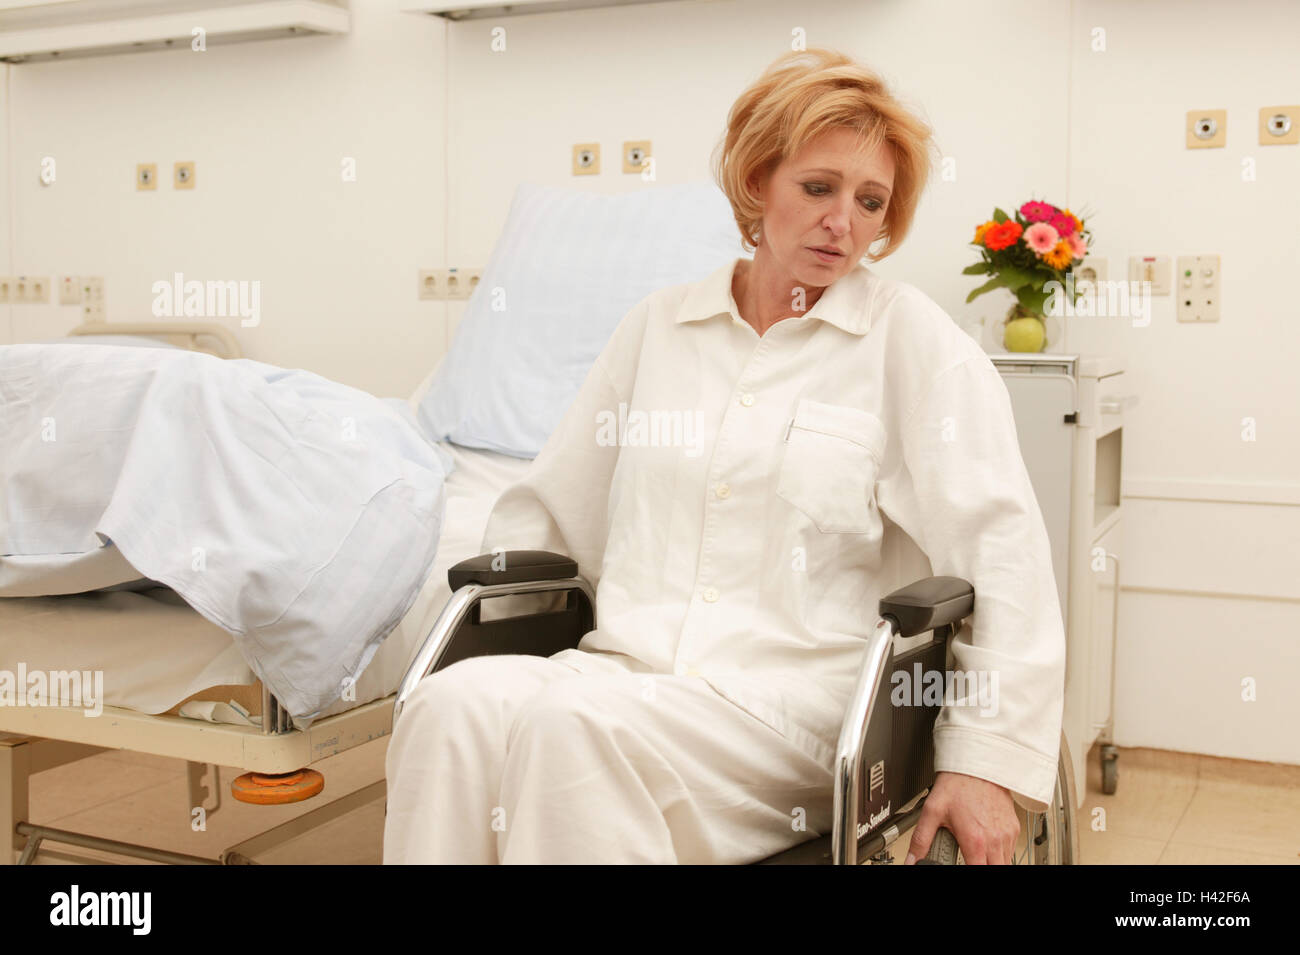 Wards, patient, invalid, wheel chair, sit, suffer sadly, Ti7, medicine, hospital, clinic, hospital, ward, bed, disease, - Stock Image